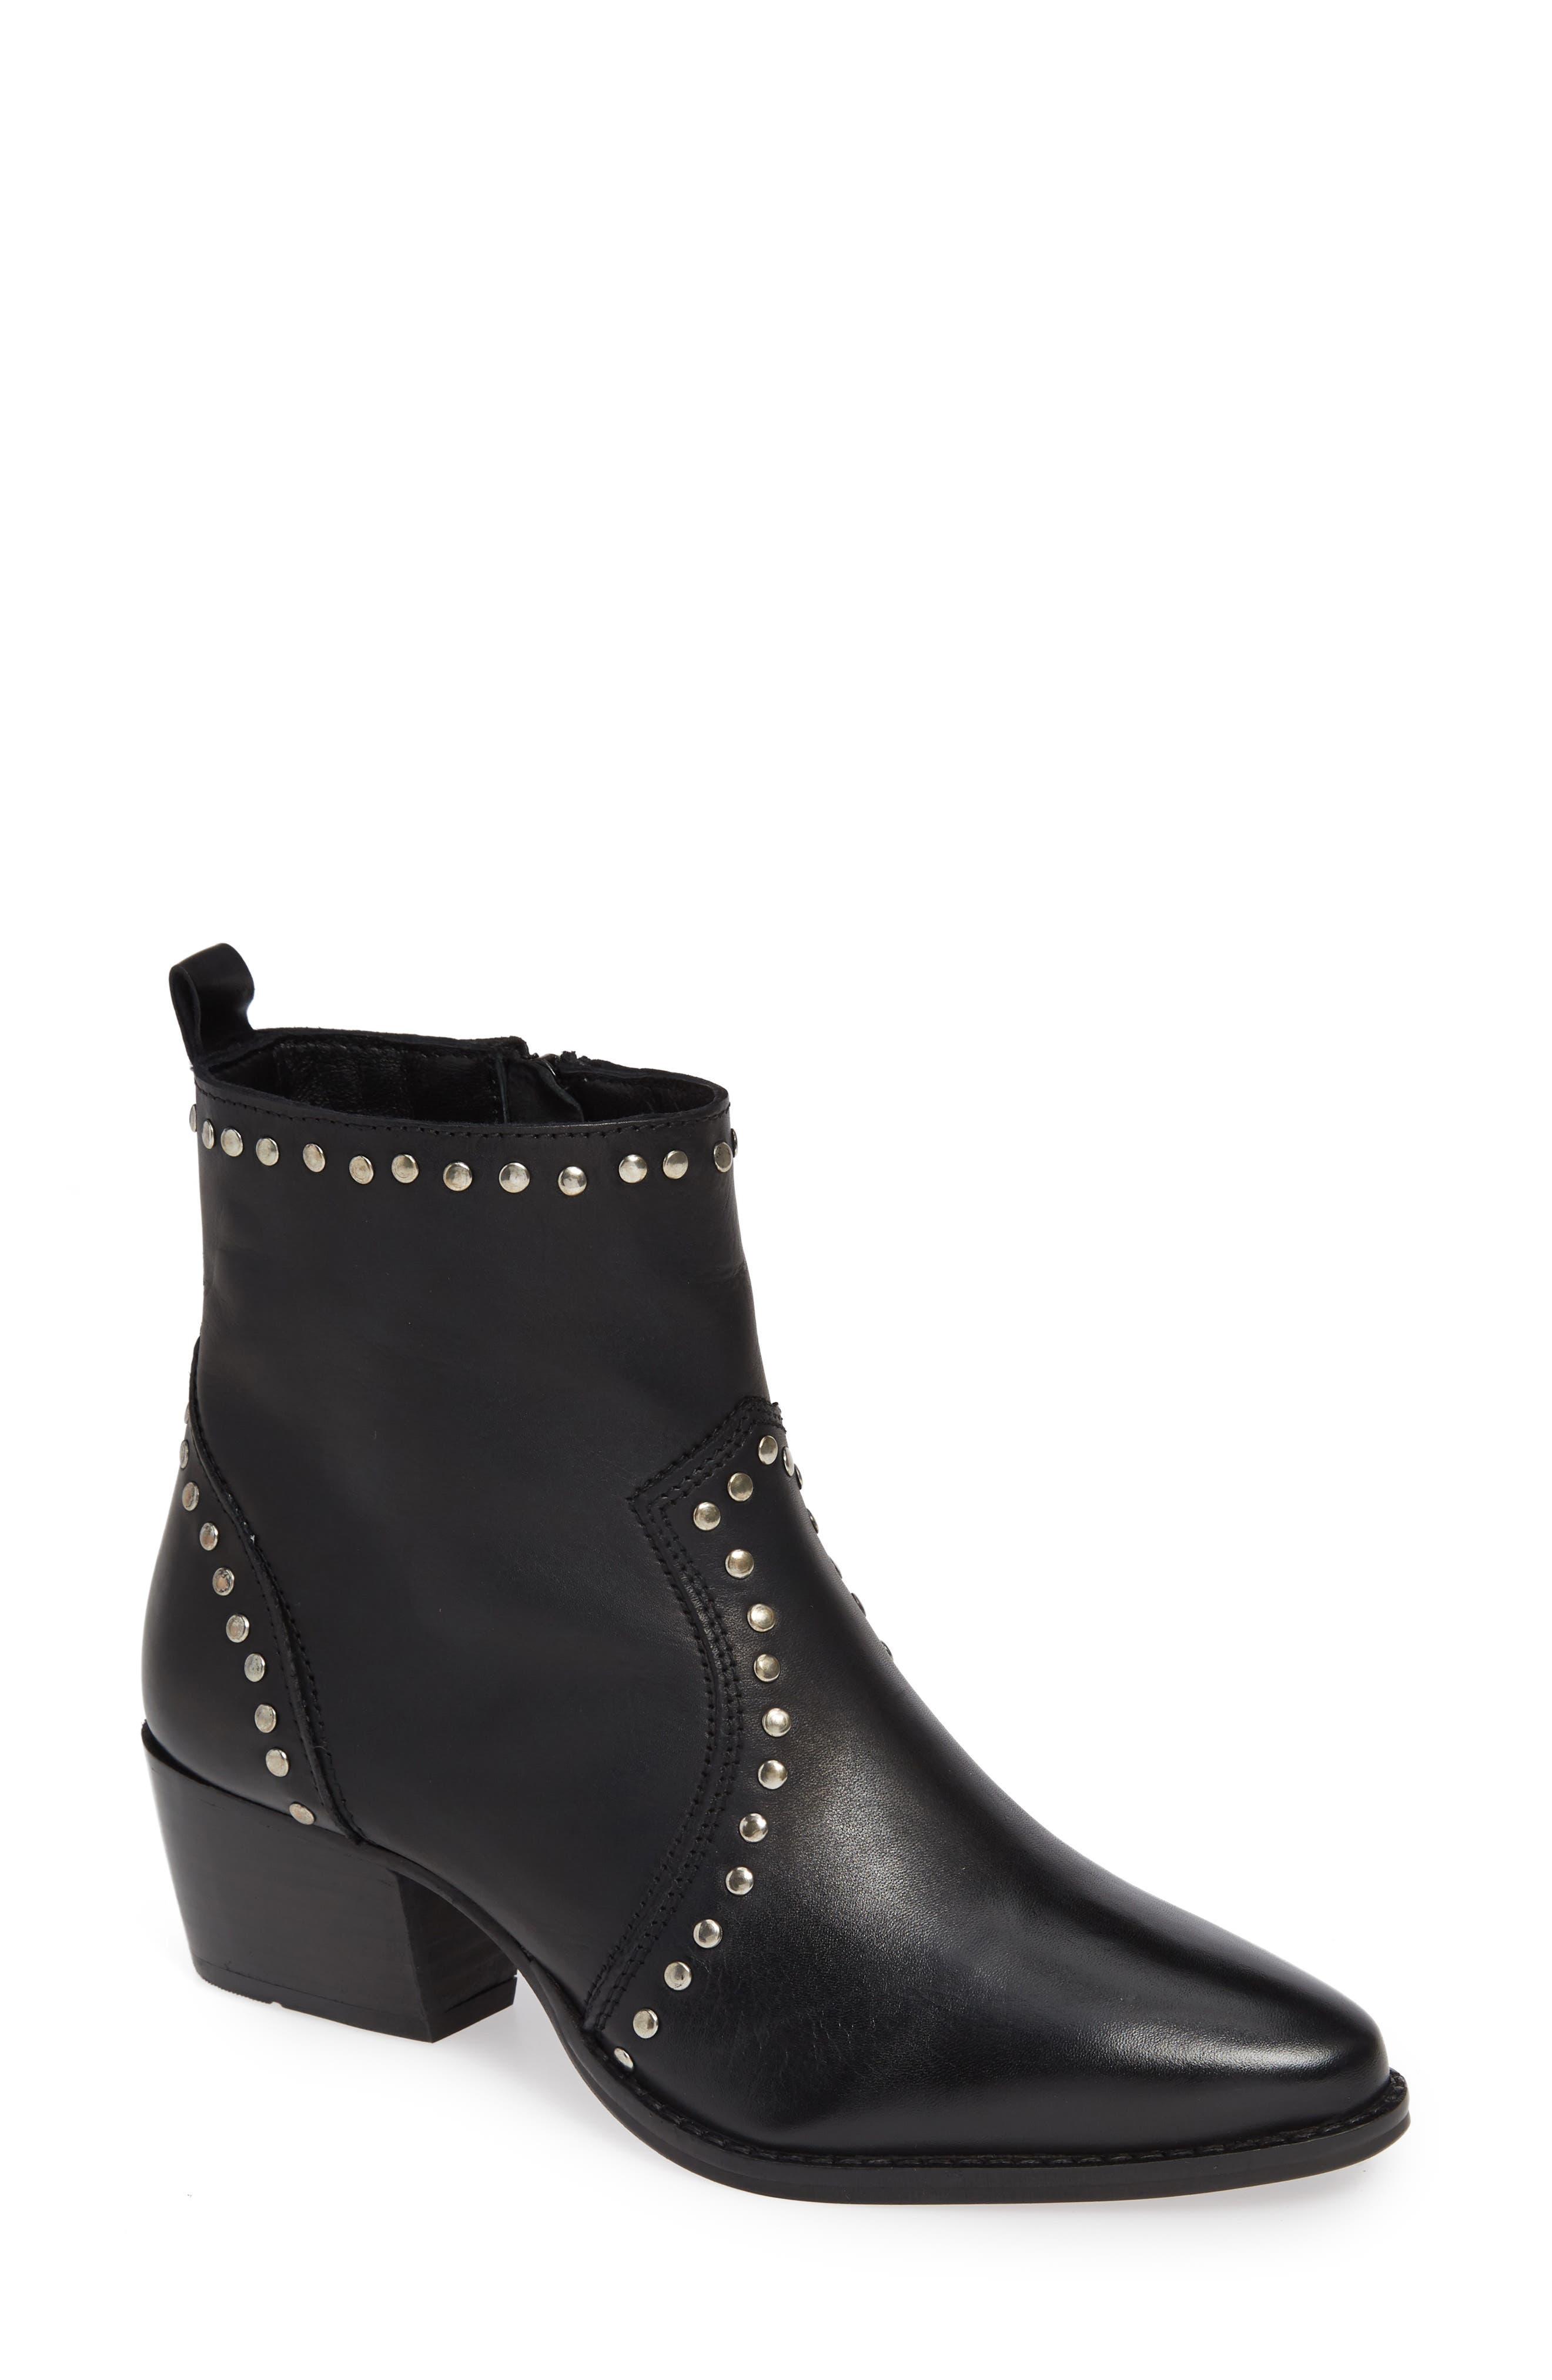 CHARLES BY CHARLES DAVID, Zye Bootie, Main thumbnail 1, color, BLACK LEATHER